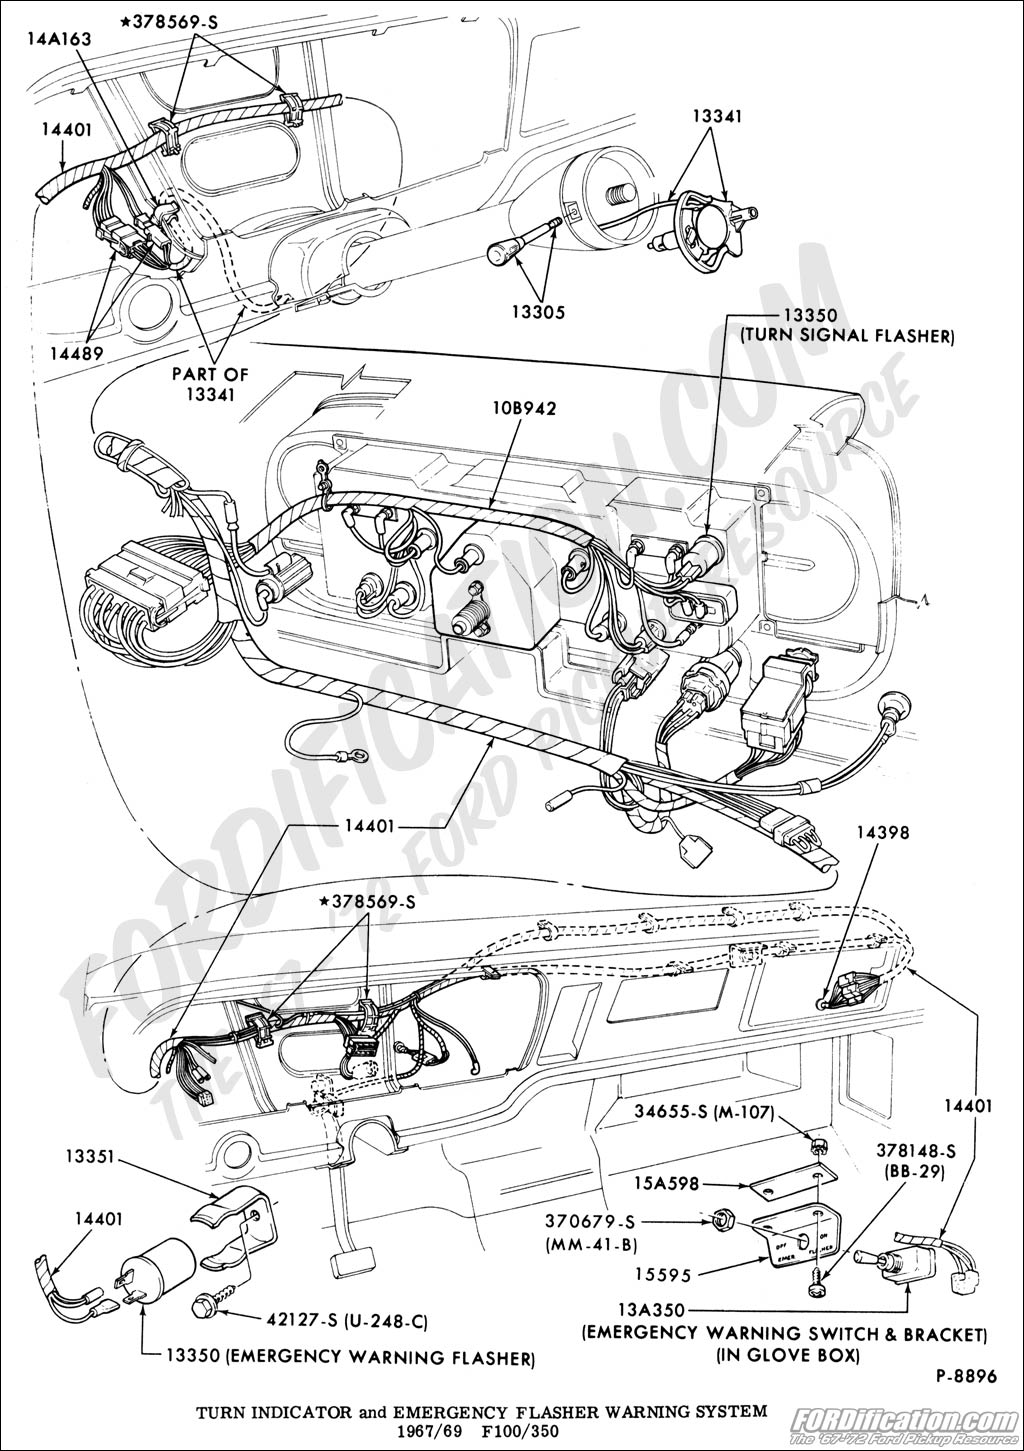 Ford Truck Technical Drawings And Schematics - Section I